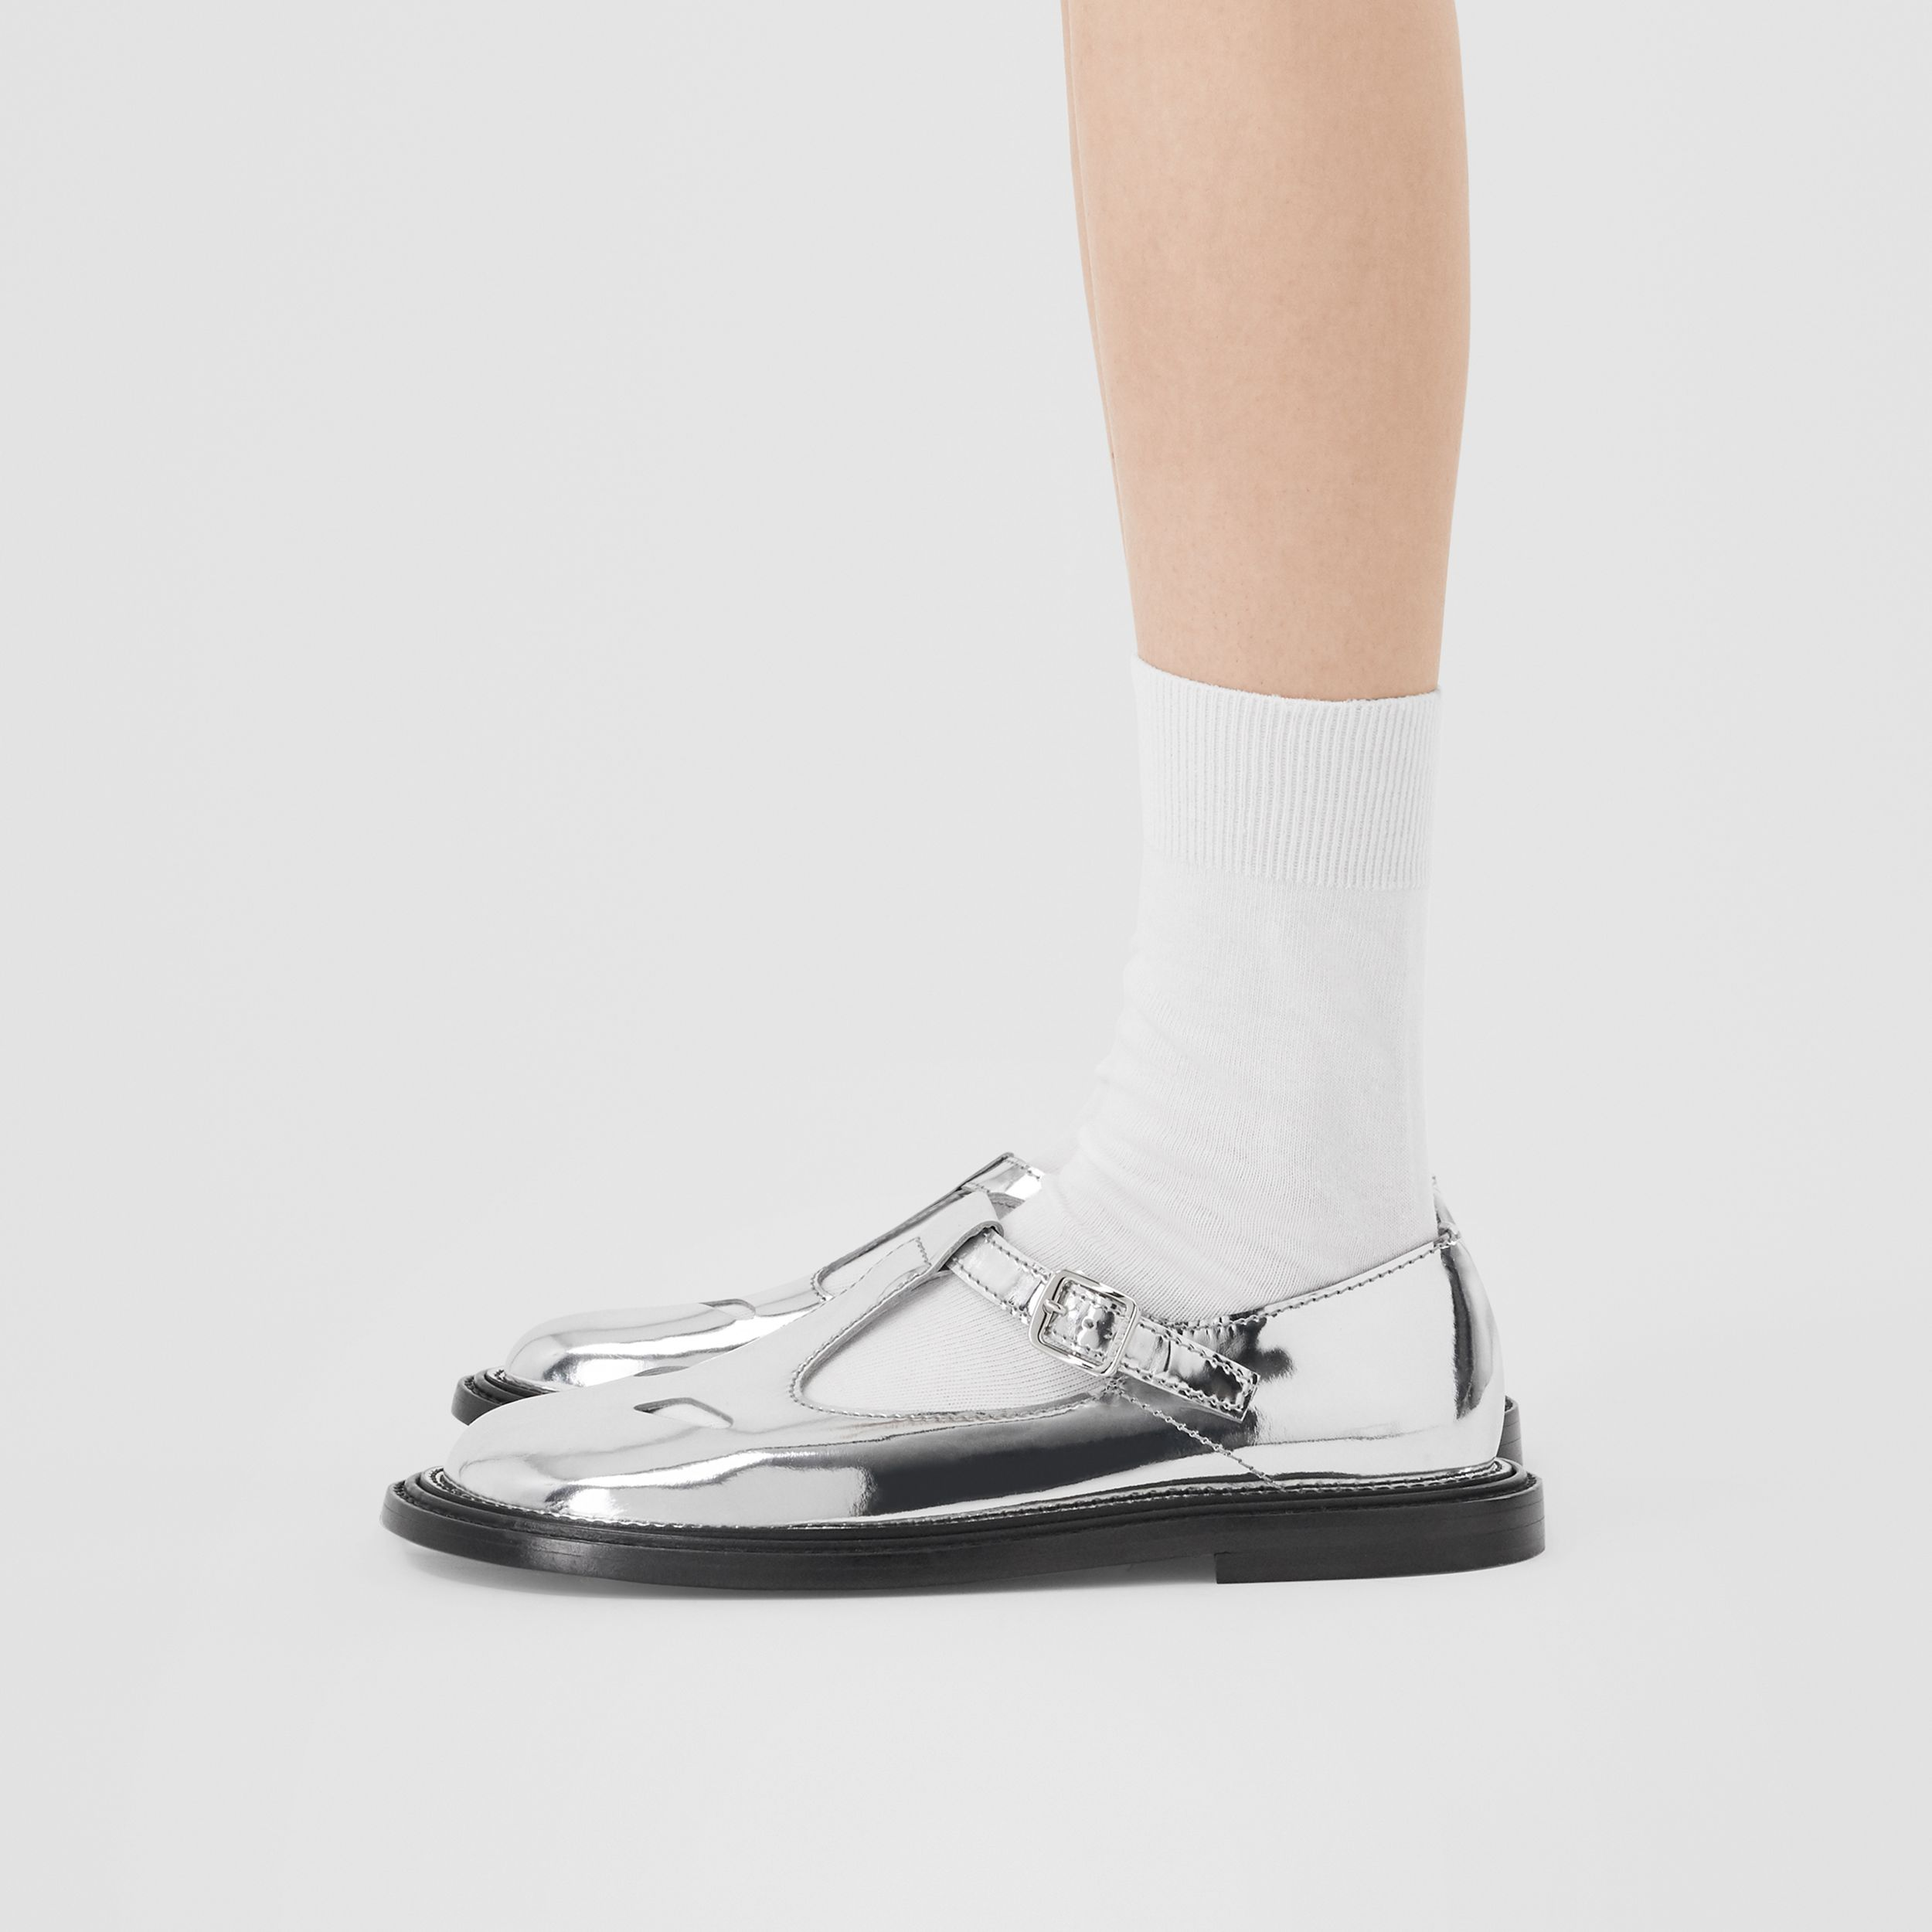 Metallic Patent Leather T-bar Shoes in Silver - Women | Burberry United Kingdom - 3